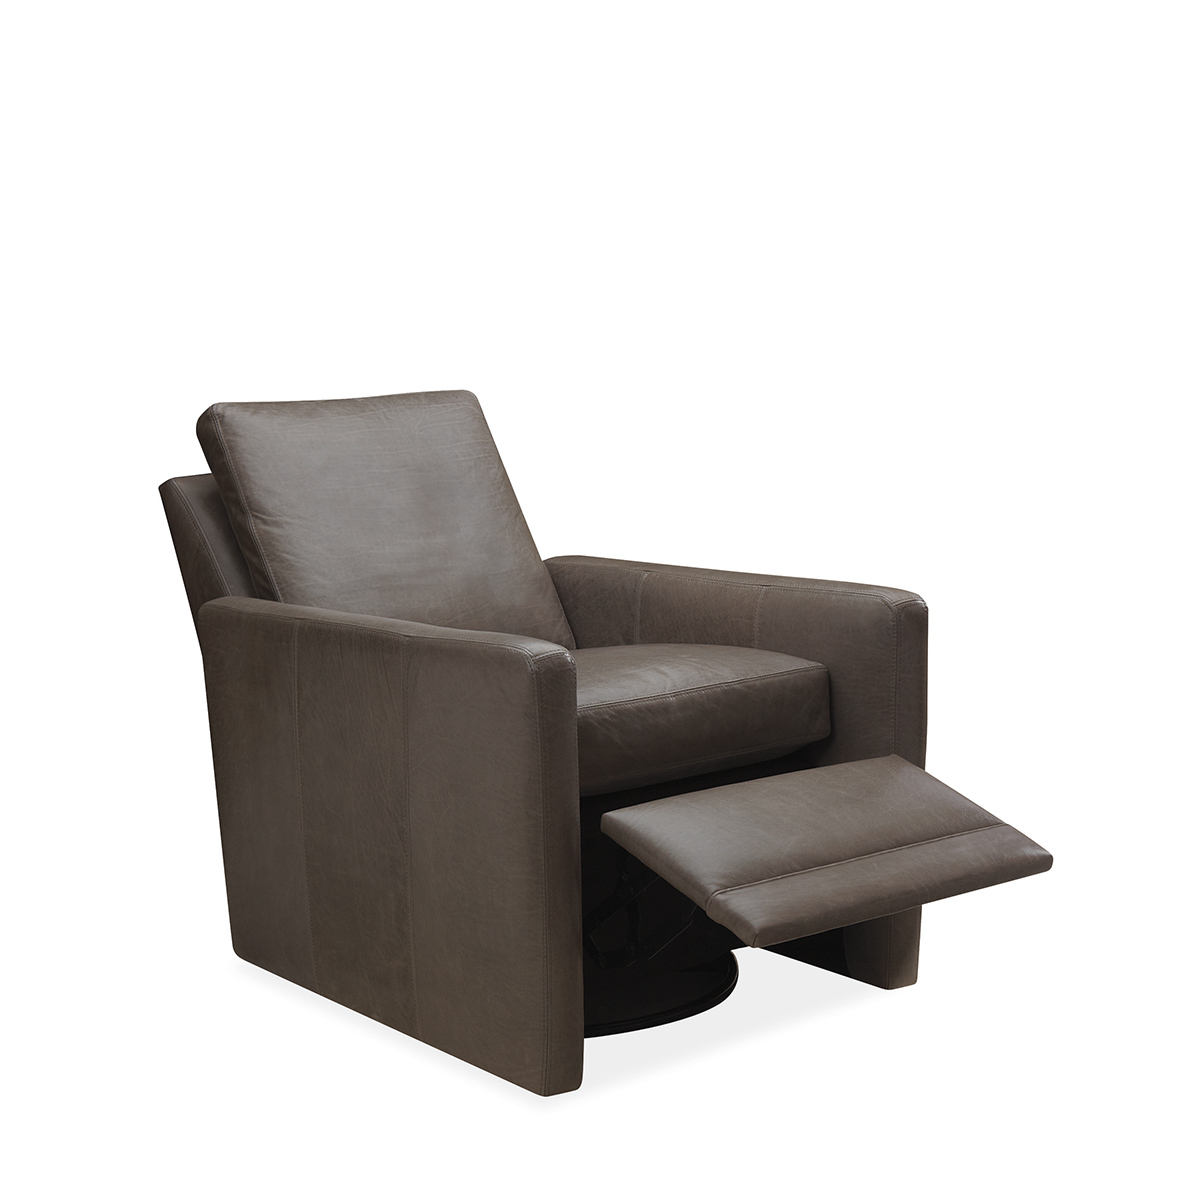 Relaxor_Swivel_Recliner_L1229-01RS_Lee_open.jpg